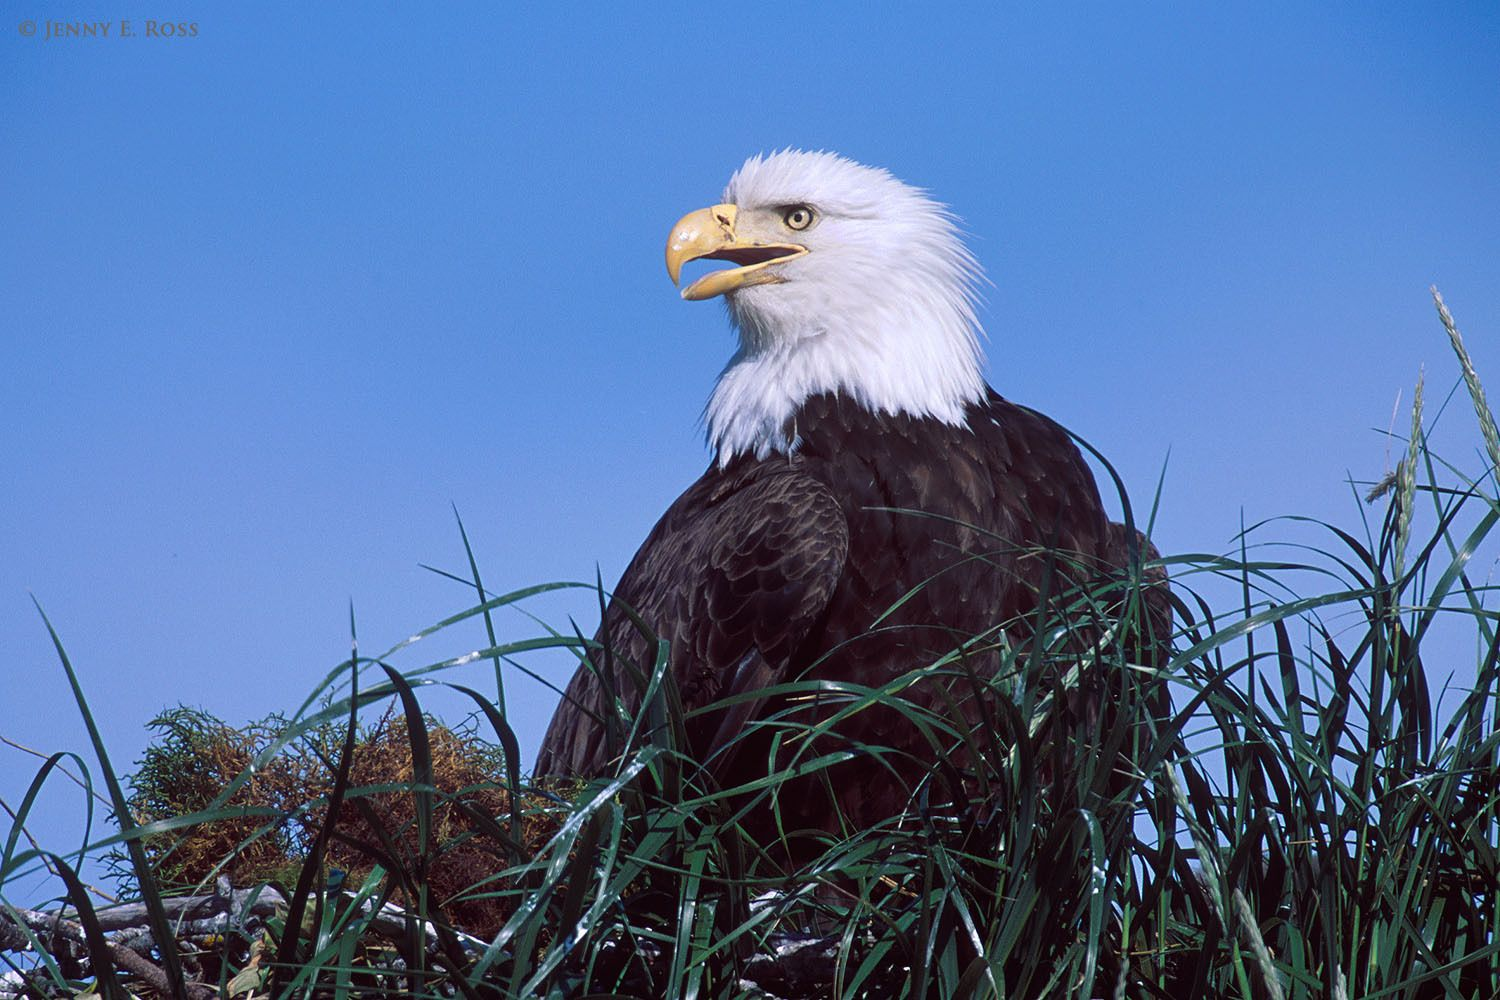 An adult bald eagle (Haliaeetus leucocephalus) on its nest in Alaska. This species breeds in some Arctic and sub-Arctic regions of Alaska and western Canada.